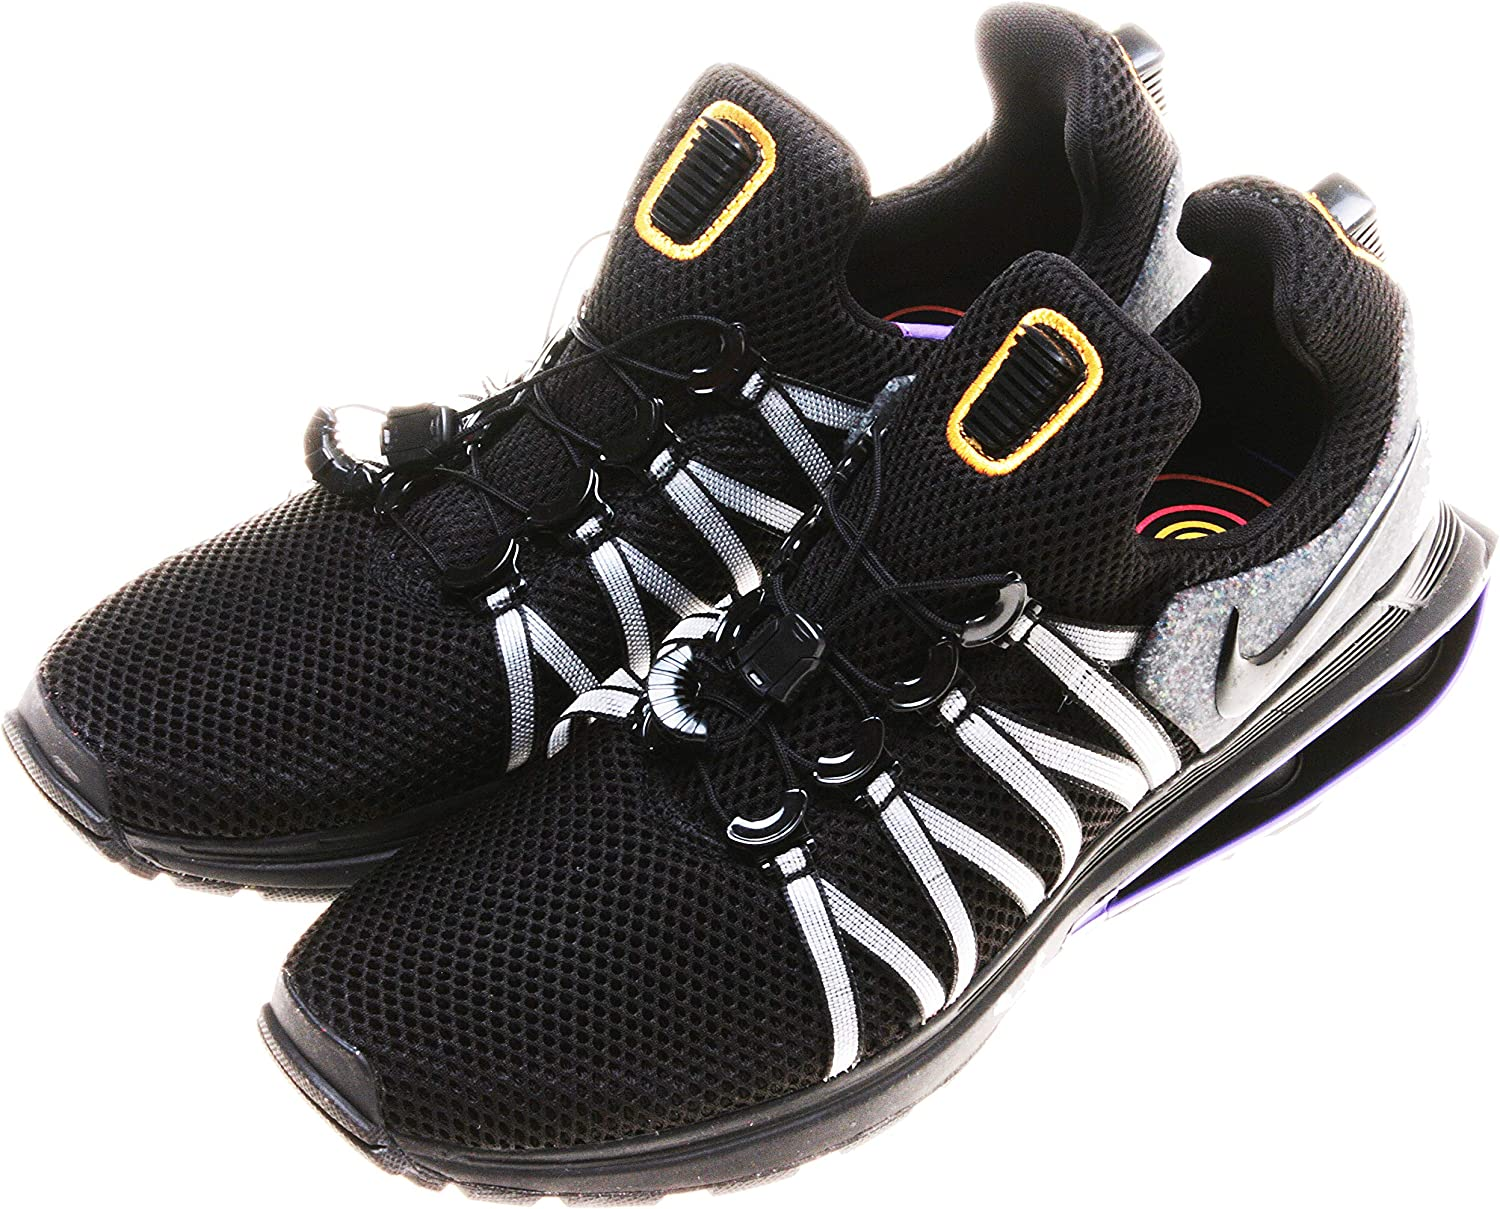 Nike Shox Gravity Men s Running Shoe 10 M US, Black